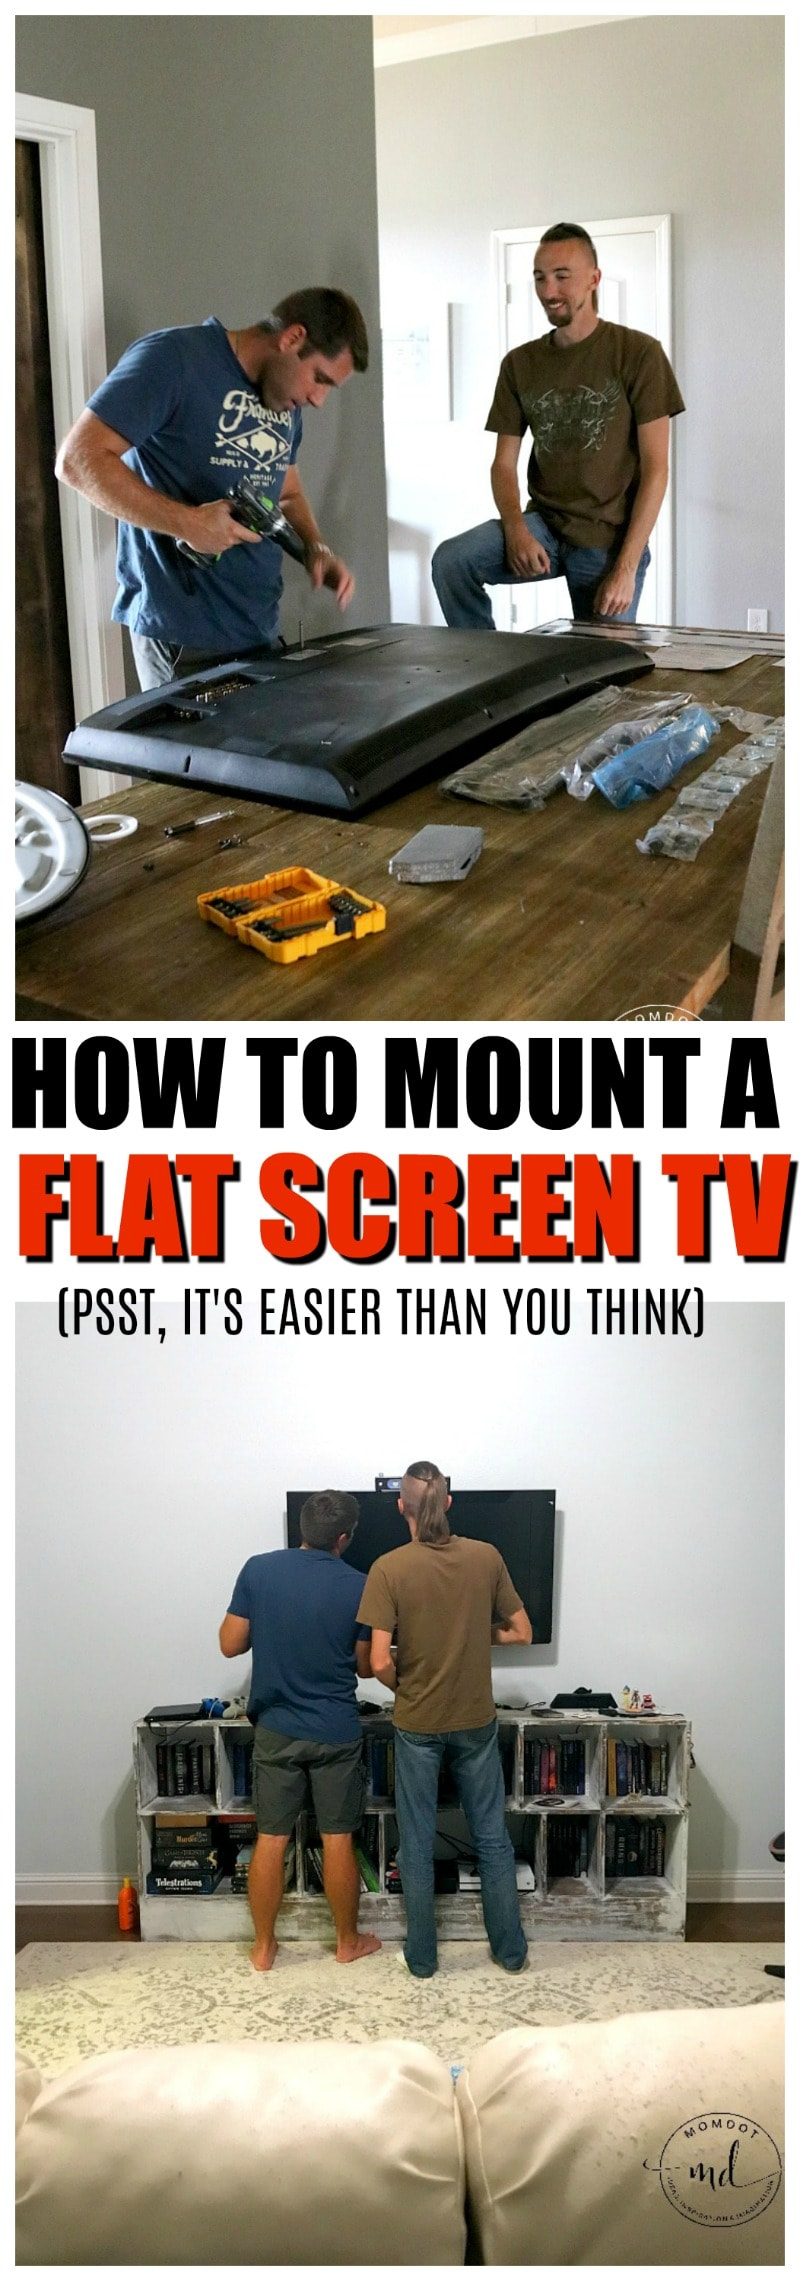 How to Mount a Flat Screen TV to the Wall | Mounting Equipment for Any TV | Tutorial